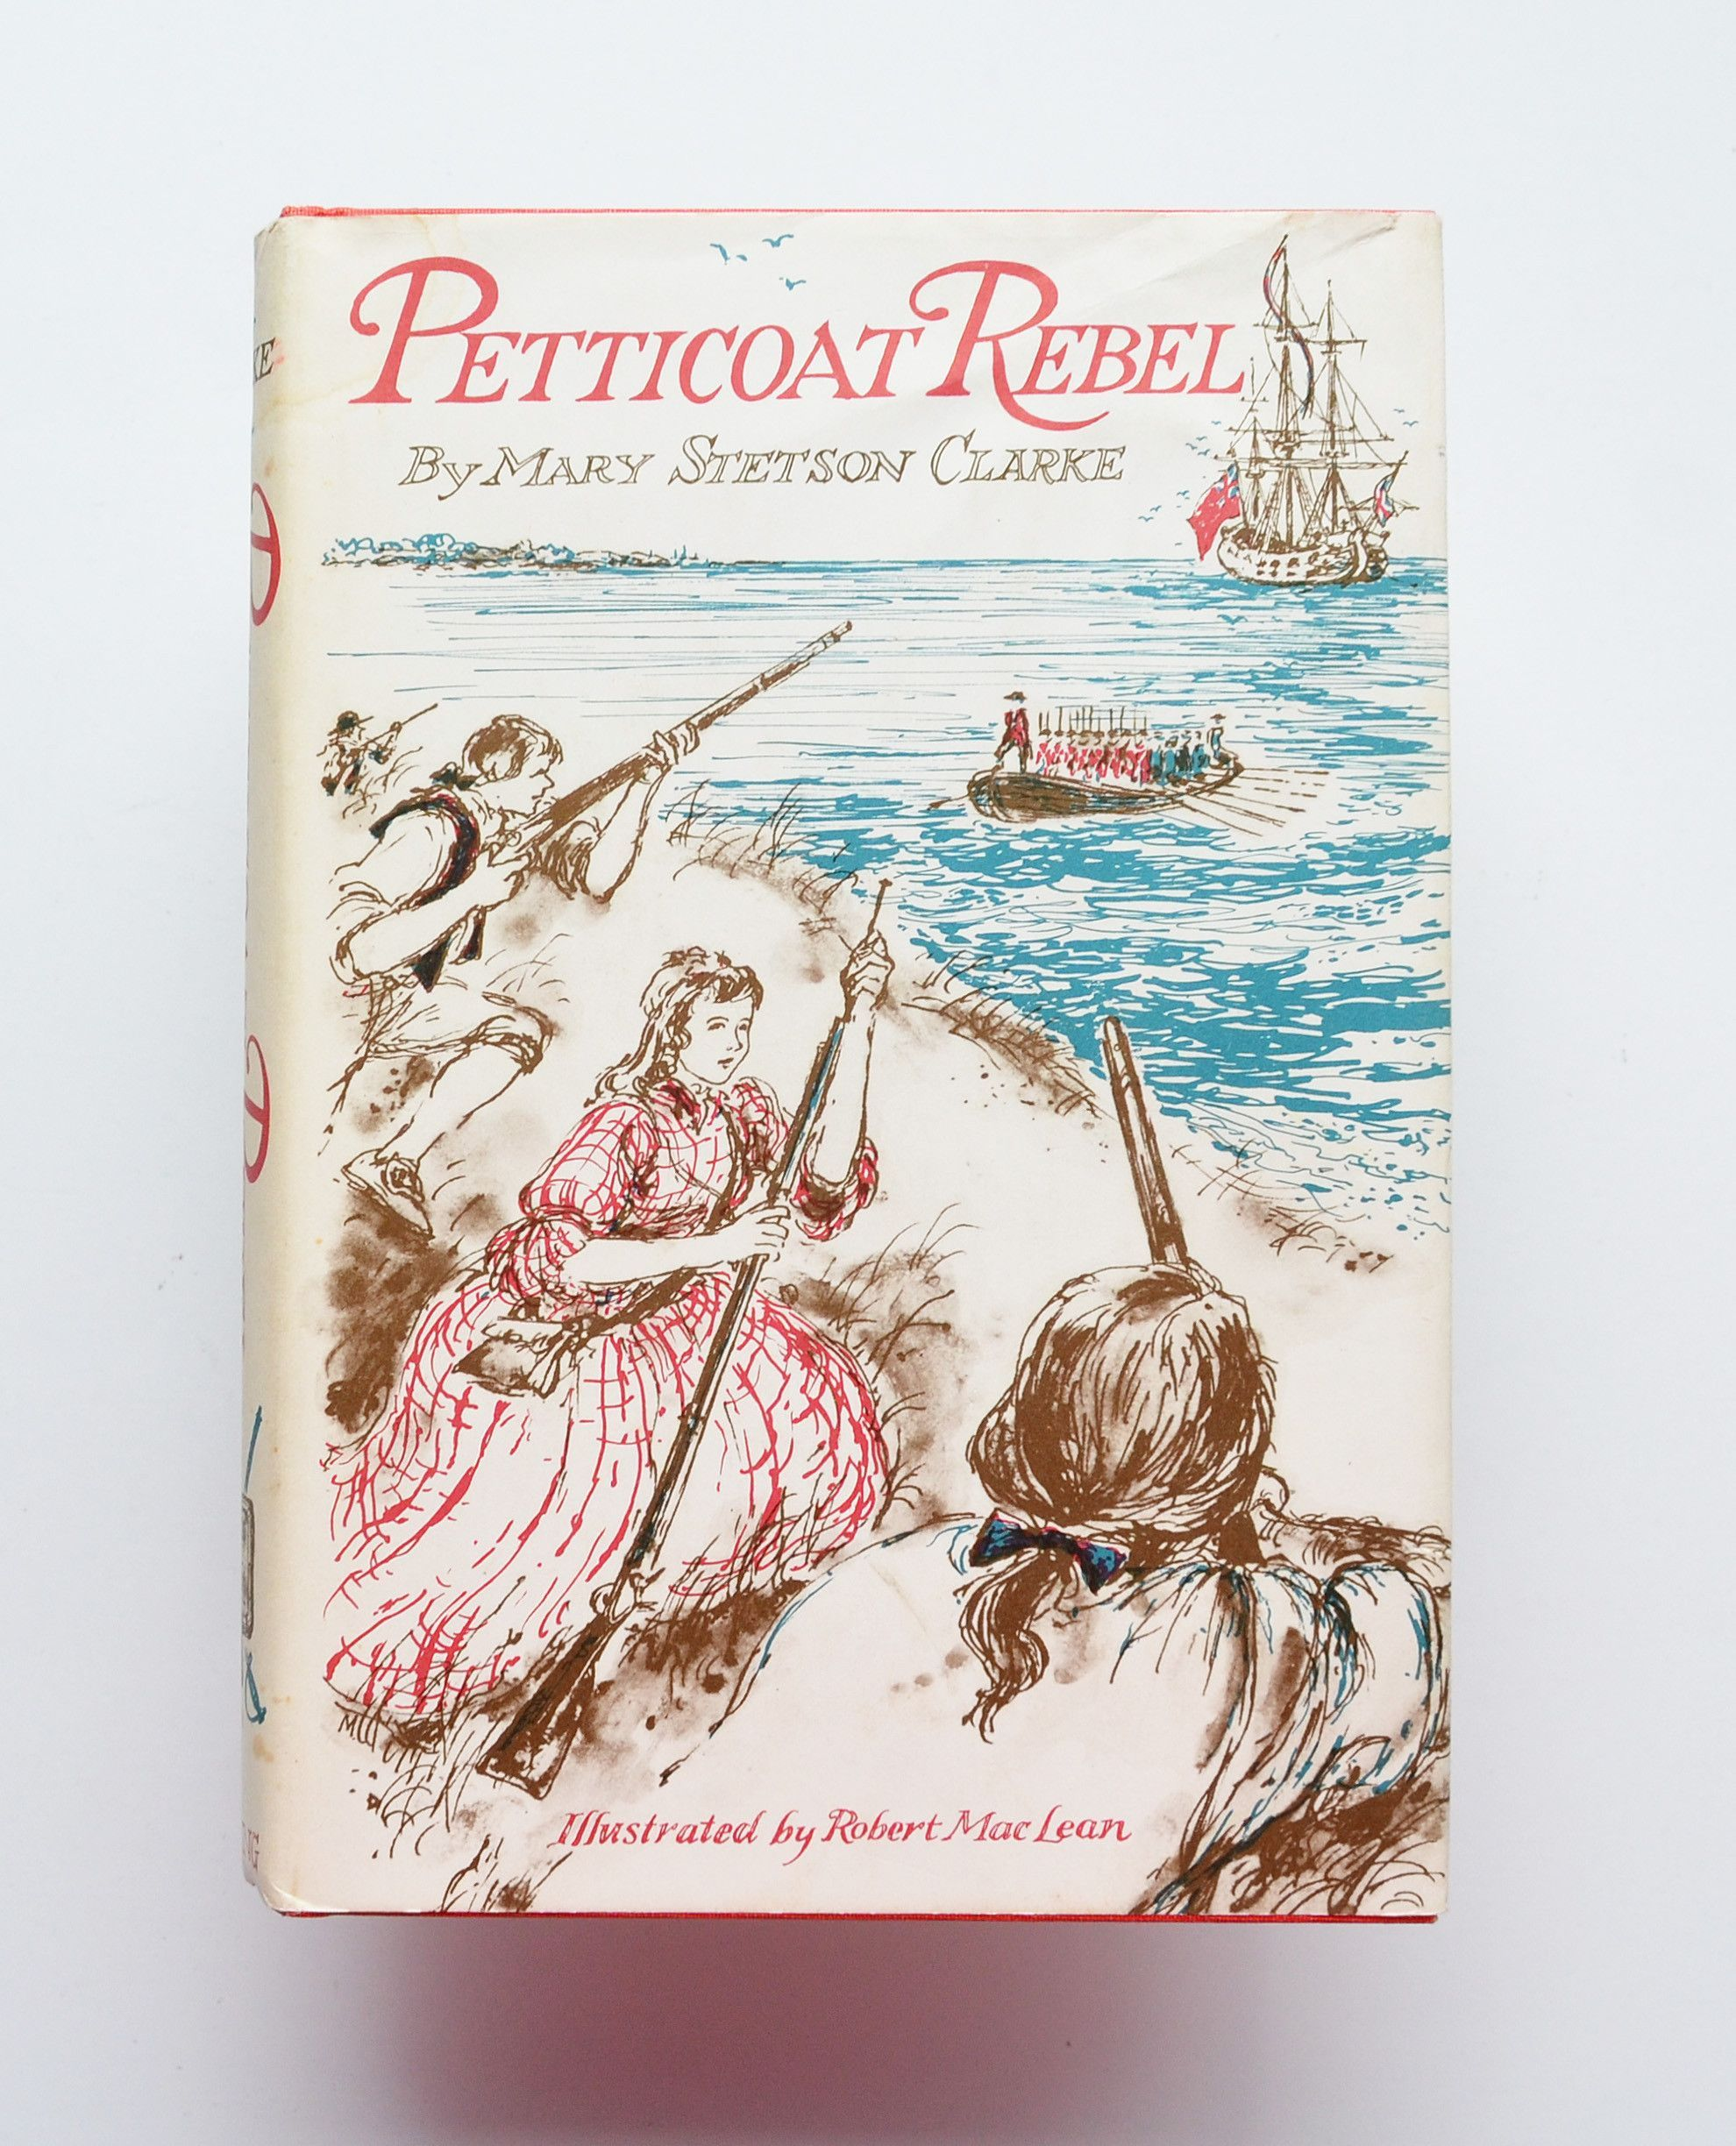 Petticoat Rebel by Mary Stetson Clarke ; Illustrated by Robert Maclean